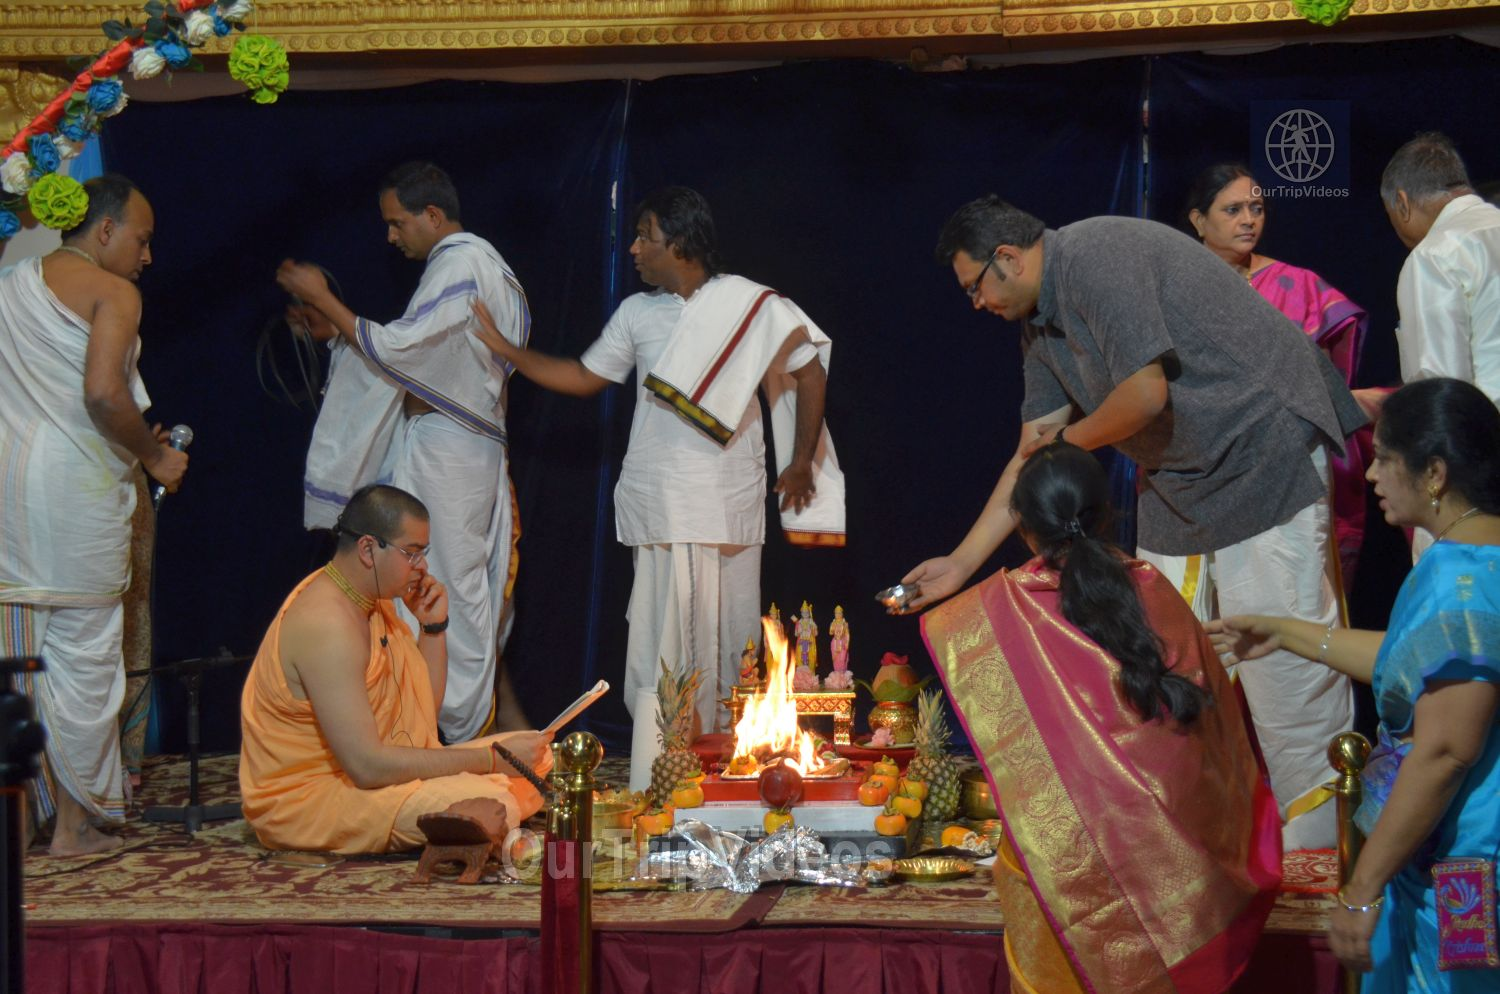 Diwali and Govardhan Puja Celebrations at KBMandir, Sunnyvale, CA, USA - Picture 12 of 25